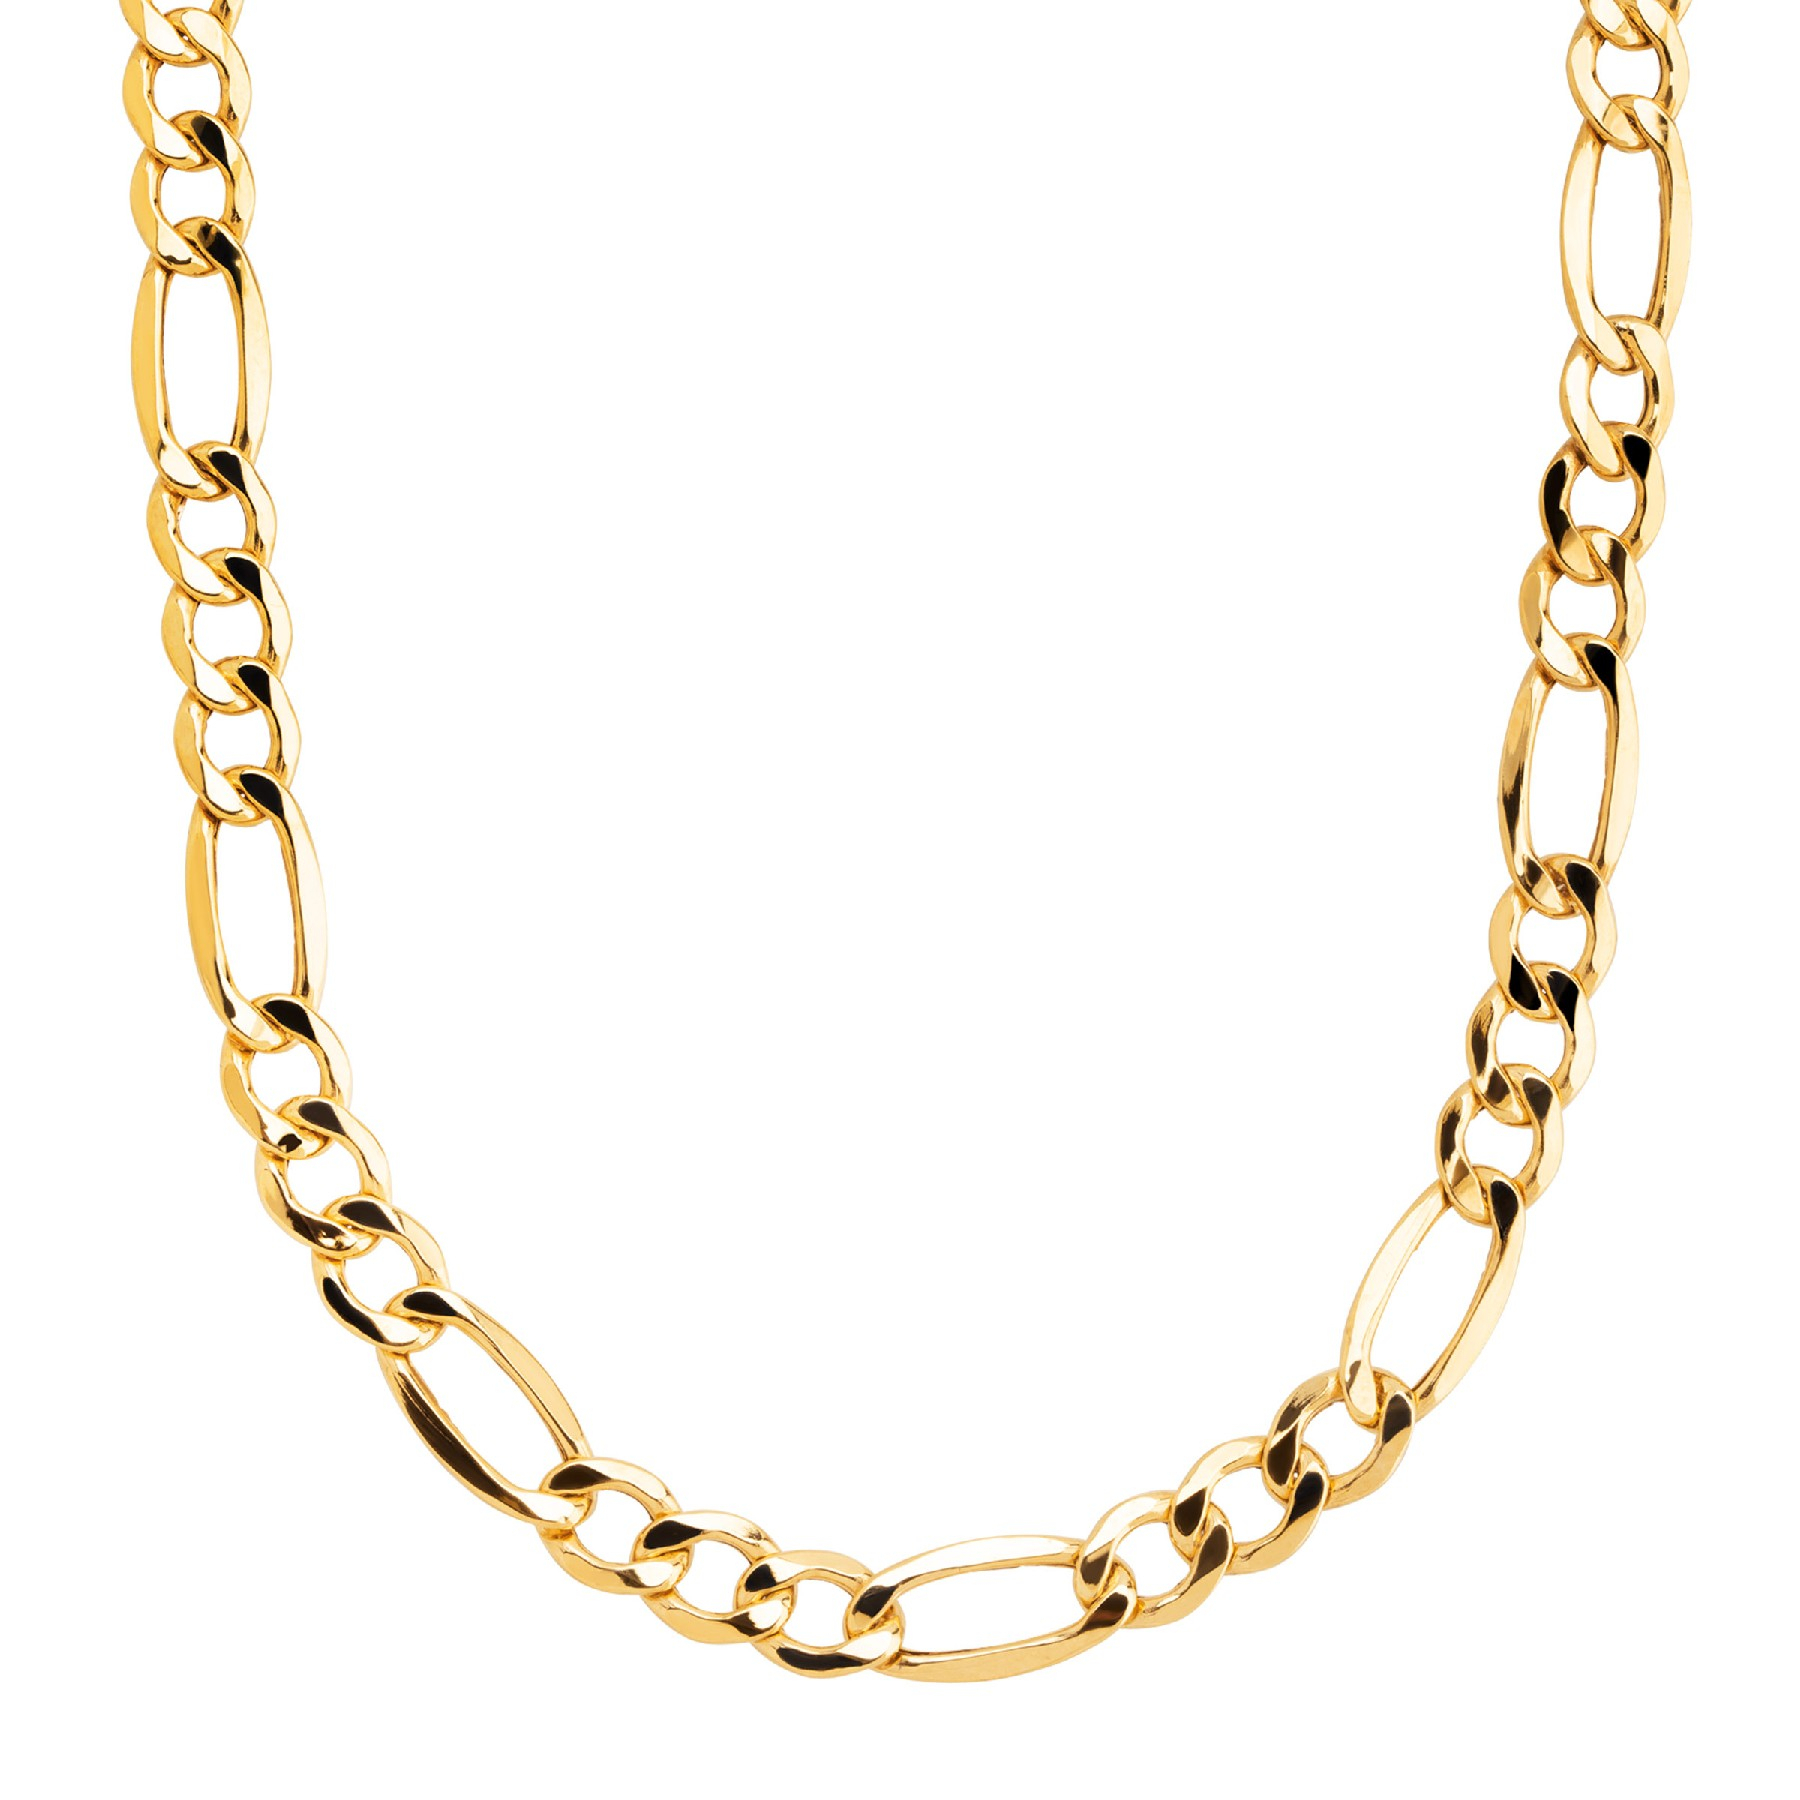 "Eternity Gold Men's Classic Figaro Chain Link Necklace In 10K Gold, 22"" For Latest Classic Figaro Chain Necklaces (View 15 of 25)"